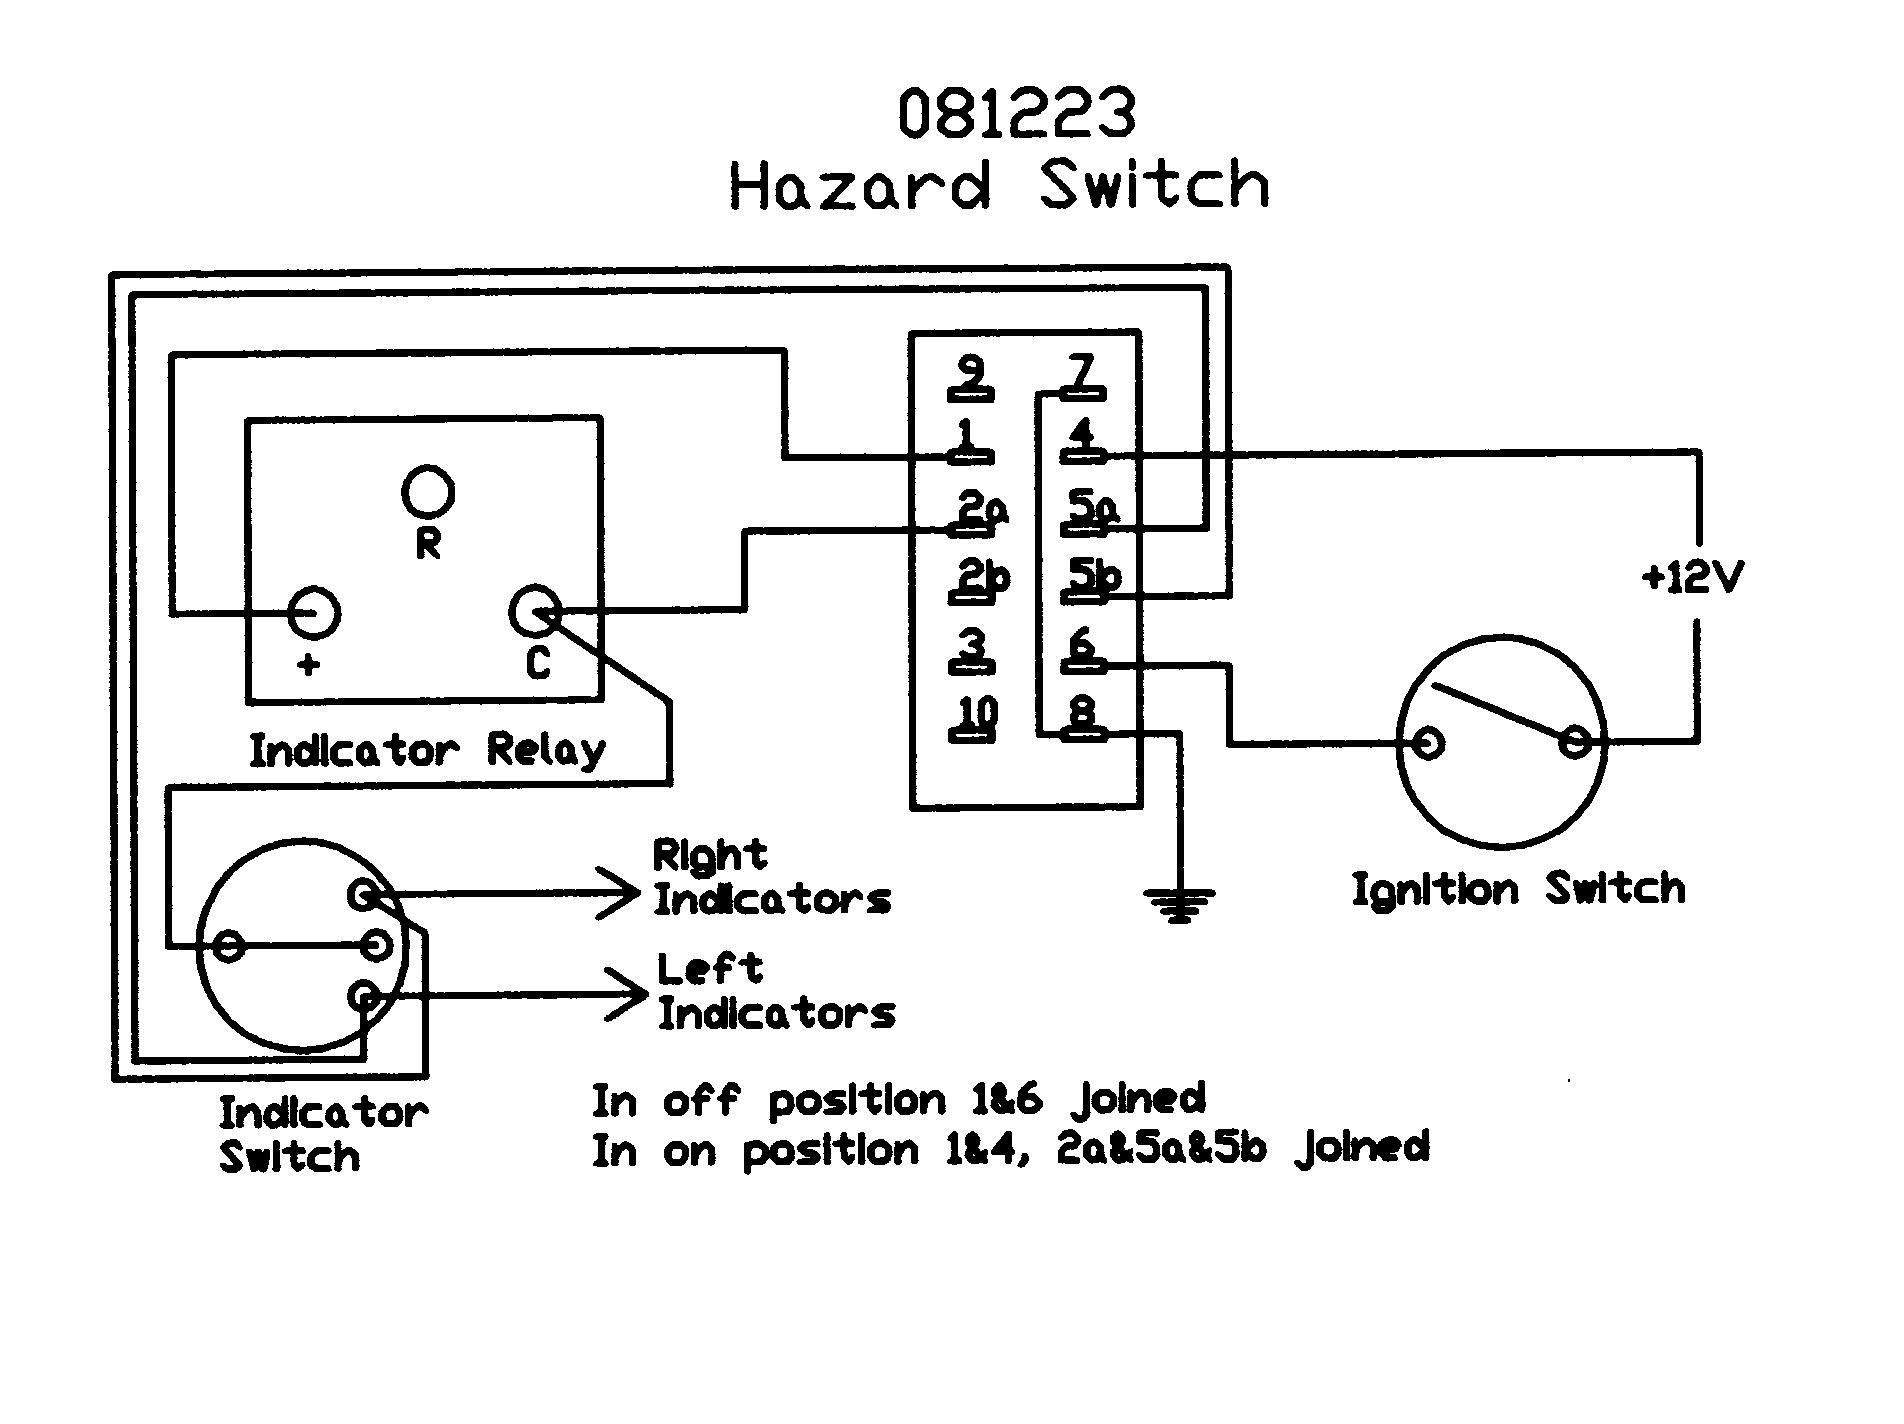 081223_wiring_diagram_1 rocker hazard switch hazard warning switch wiring diagram at soozxer.org